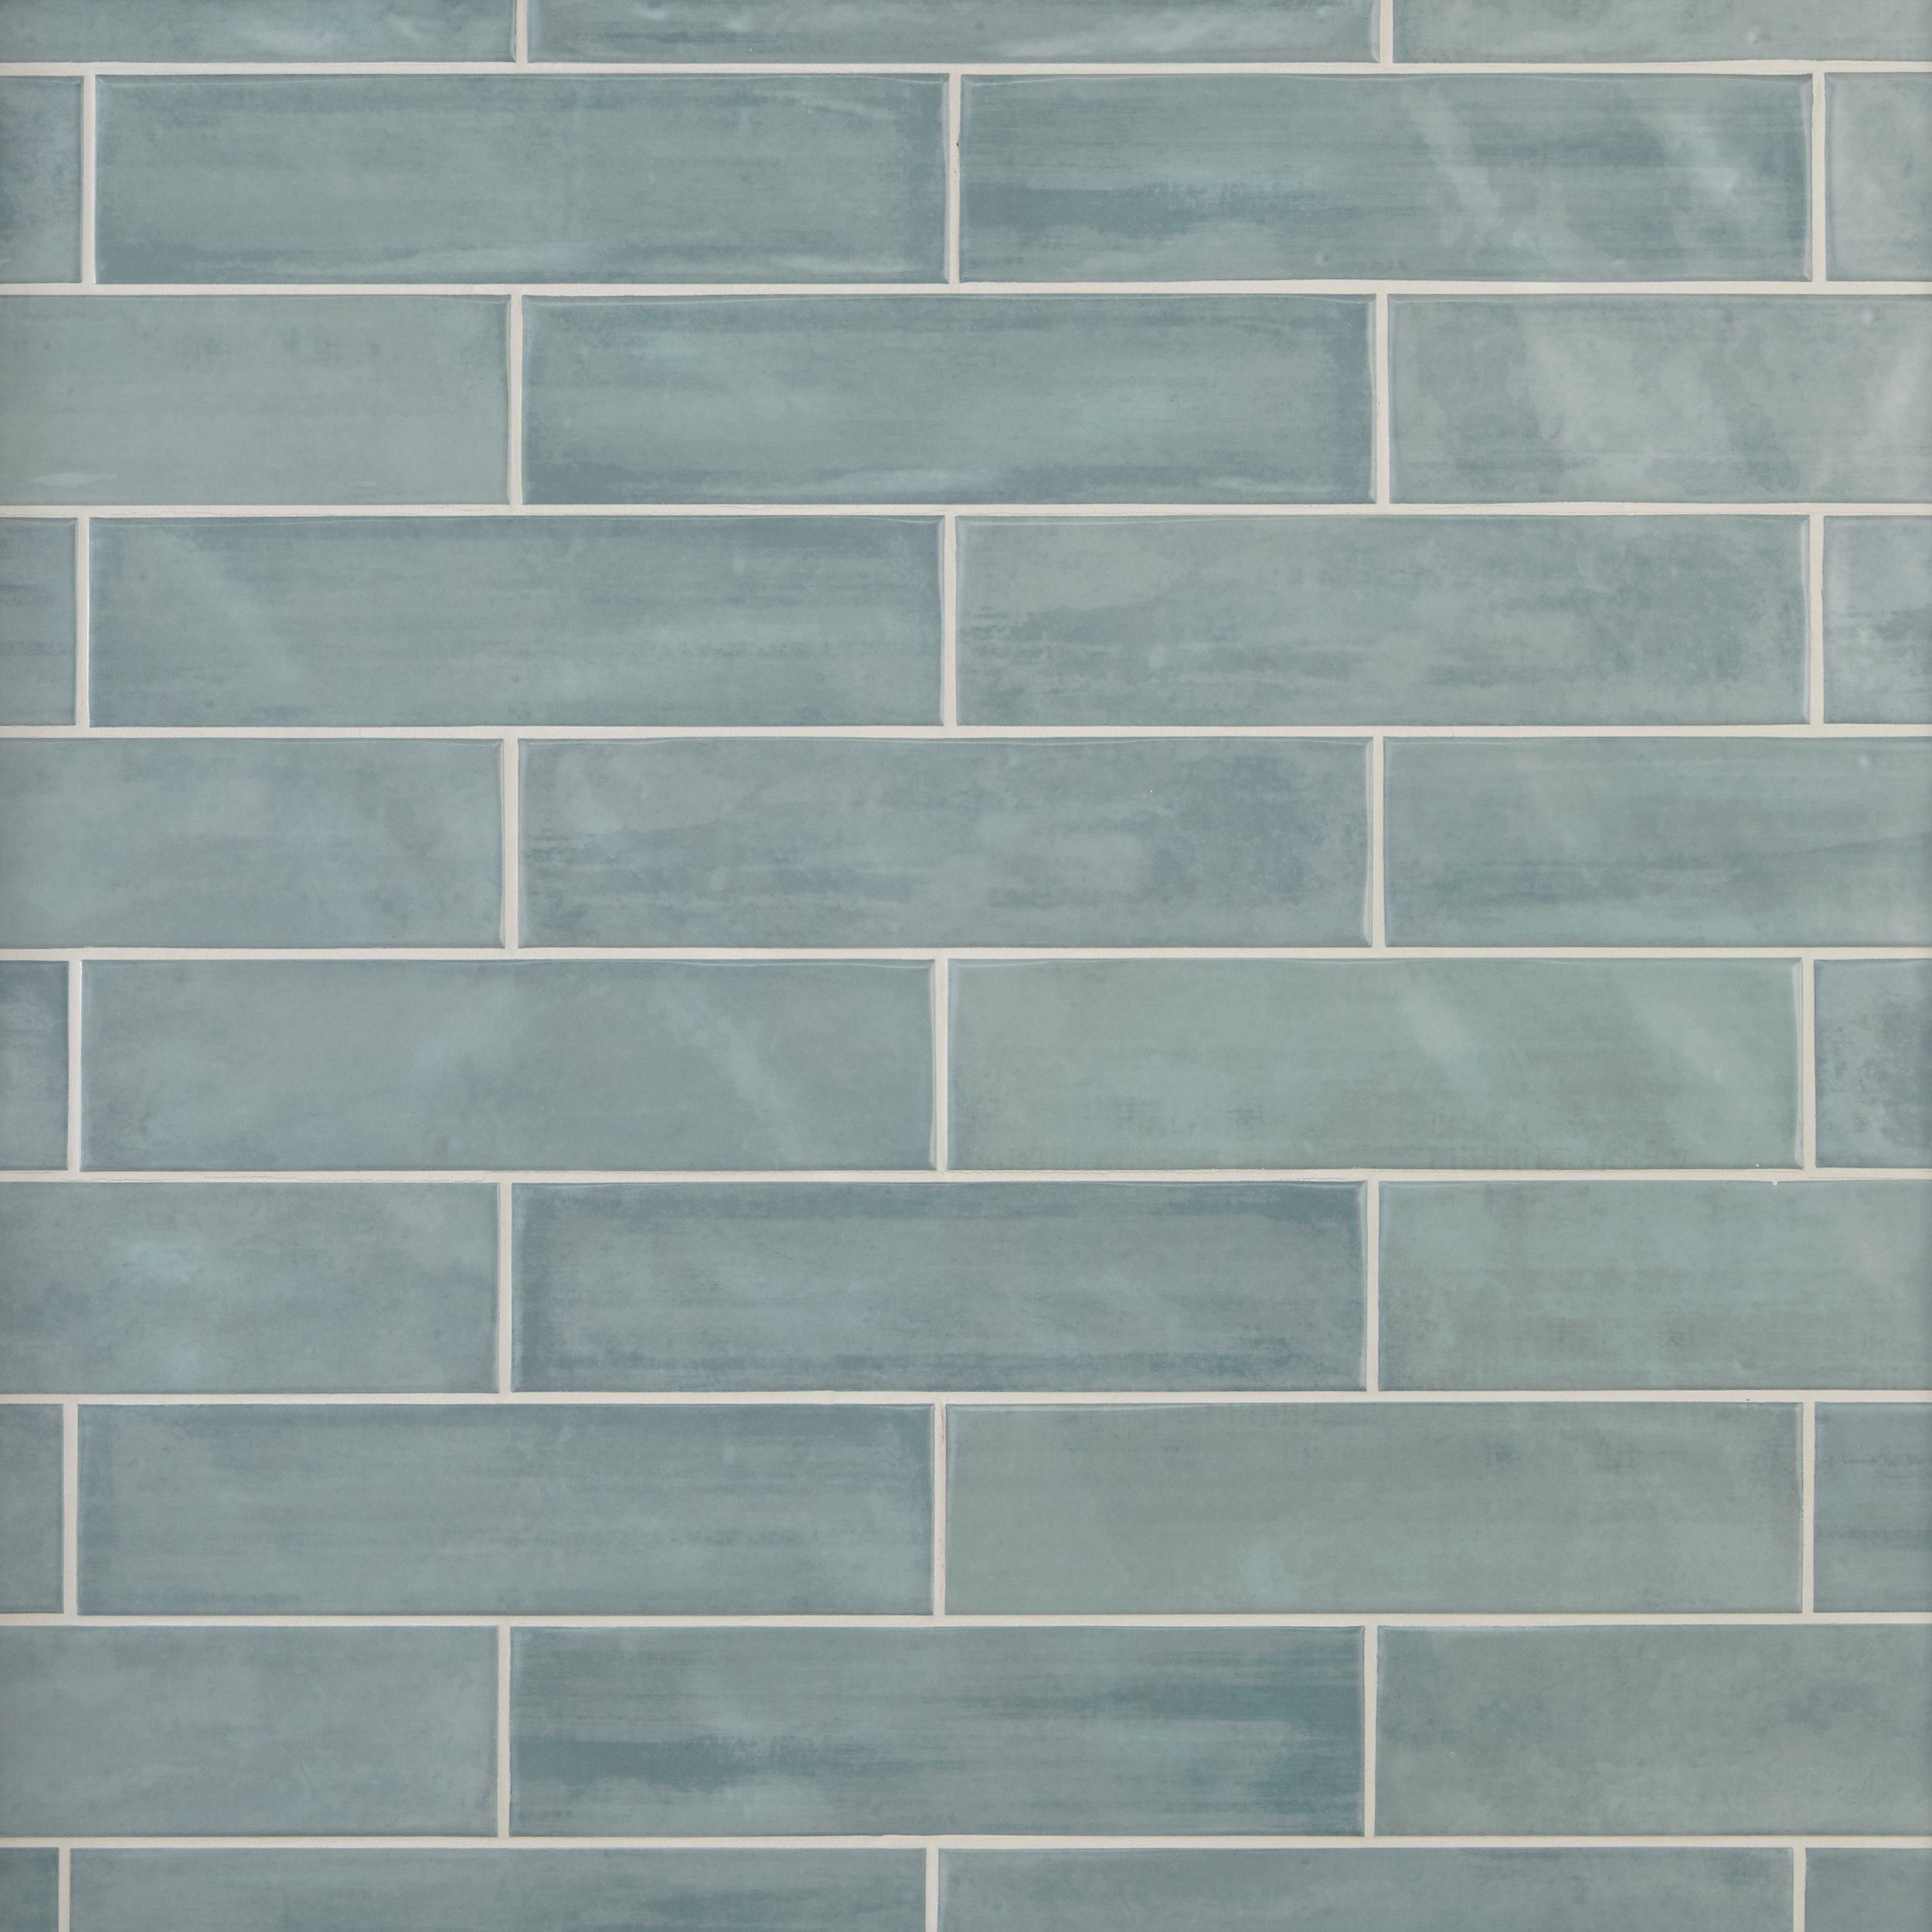 Seaside Polished Ceramic Tile - 4 x 16 - 100467729 | Floor and Decor